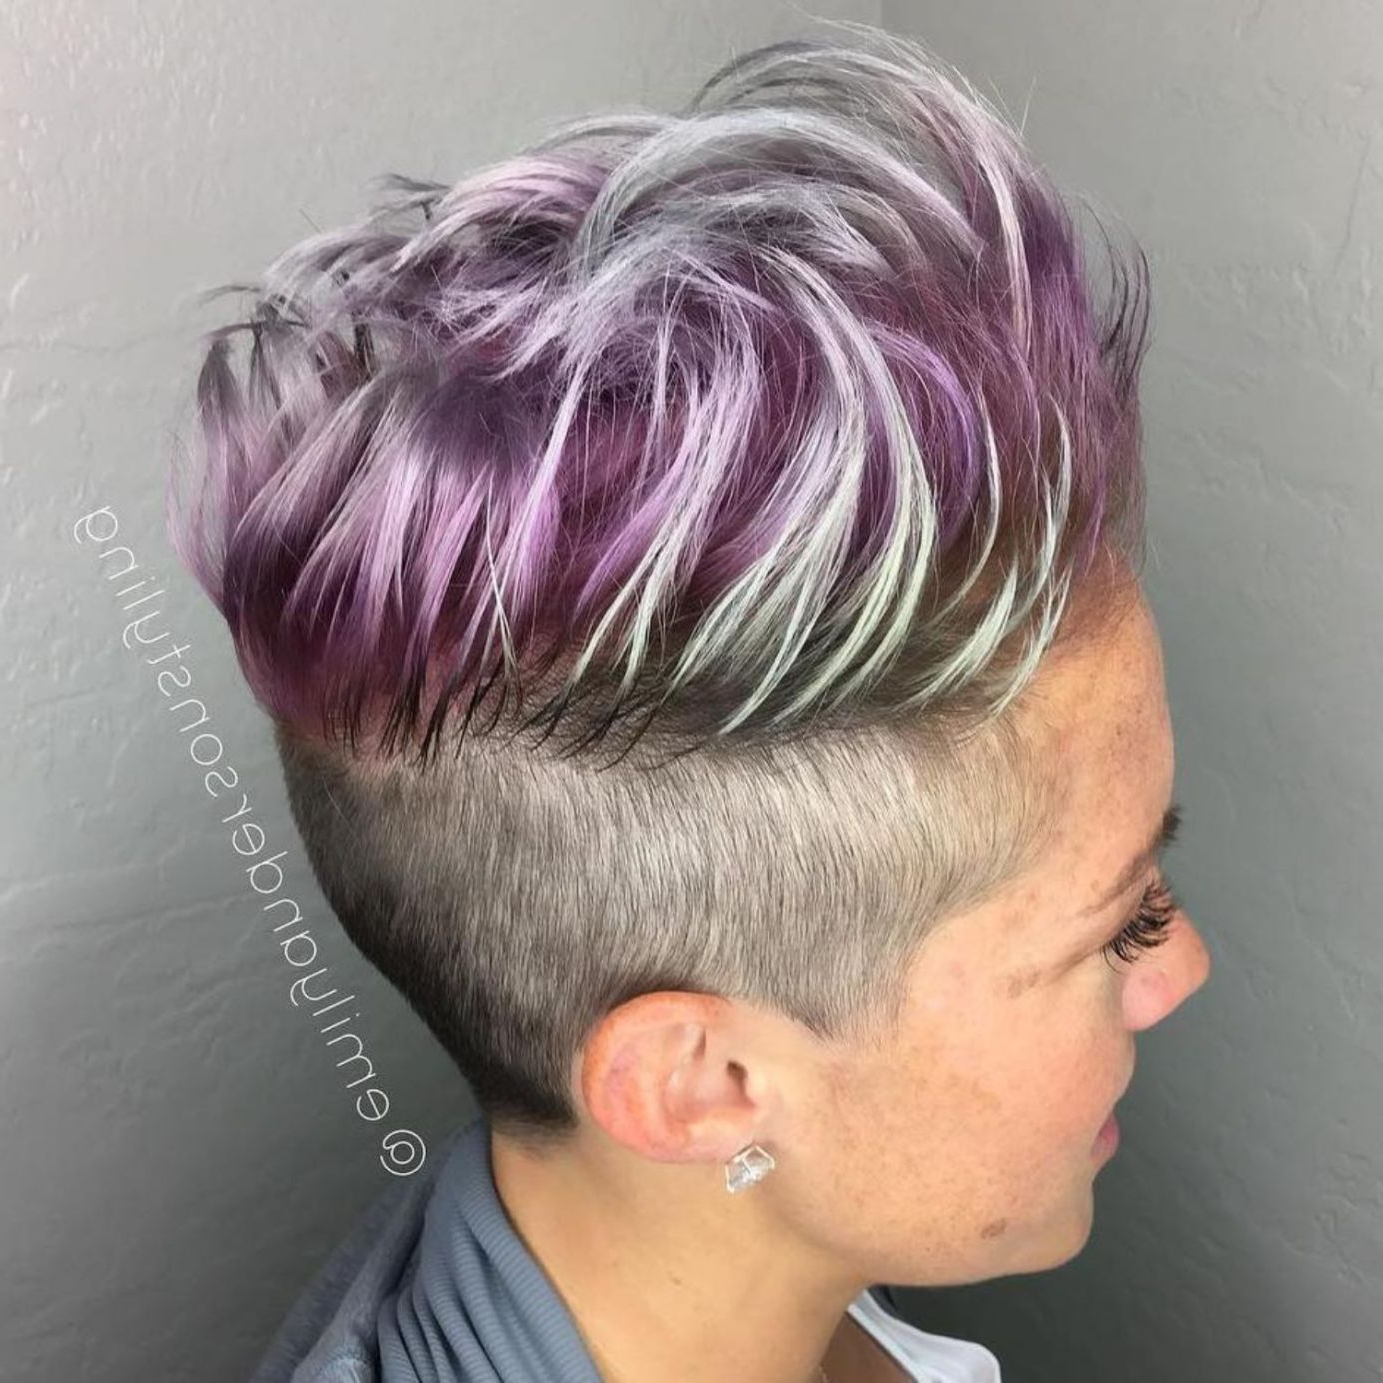 70 Most Gorgeous Mohawk Hairstyles Of Nowadays In (View 3 of 20)